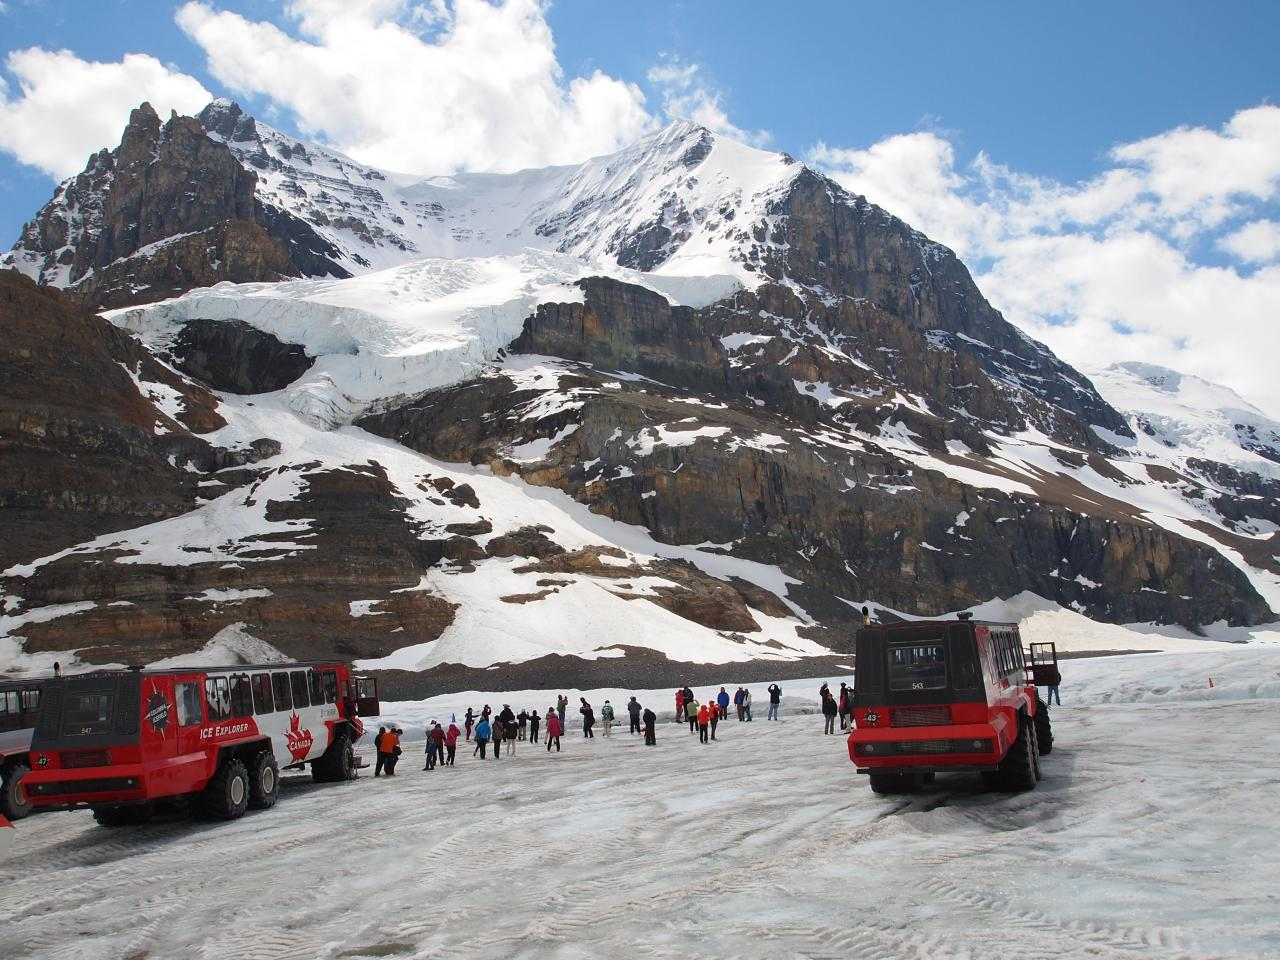 Brewster snow-coach tour. Athabasca Glacier  photo by Walter Lim